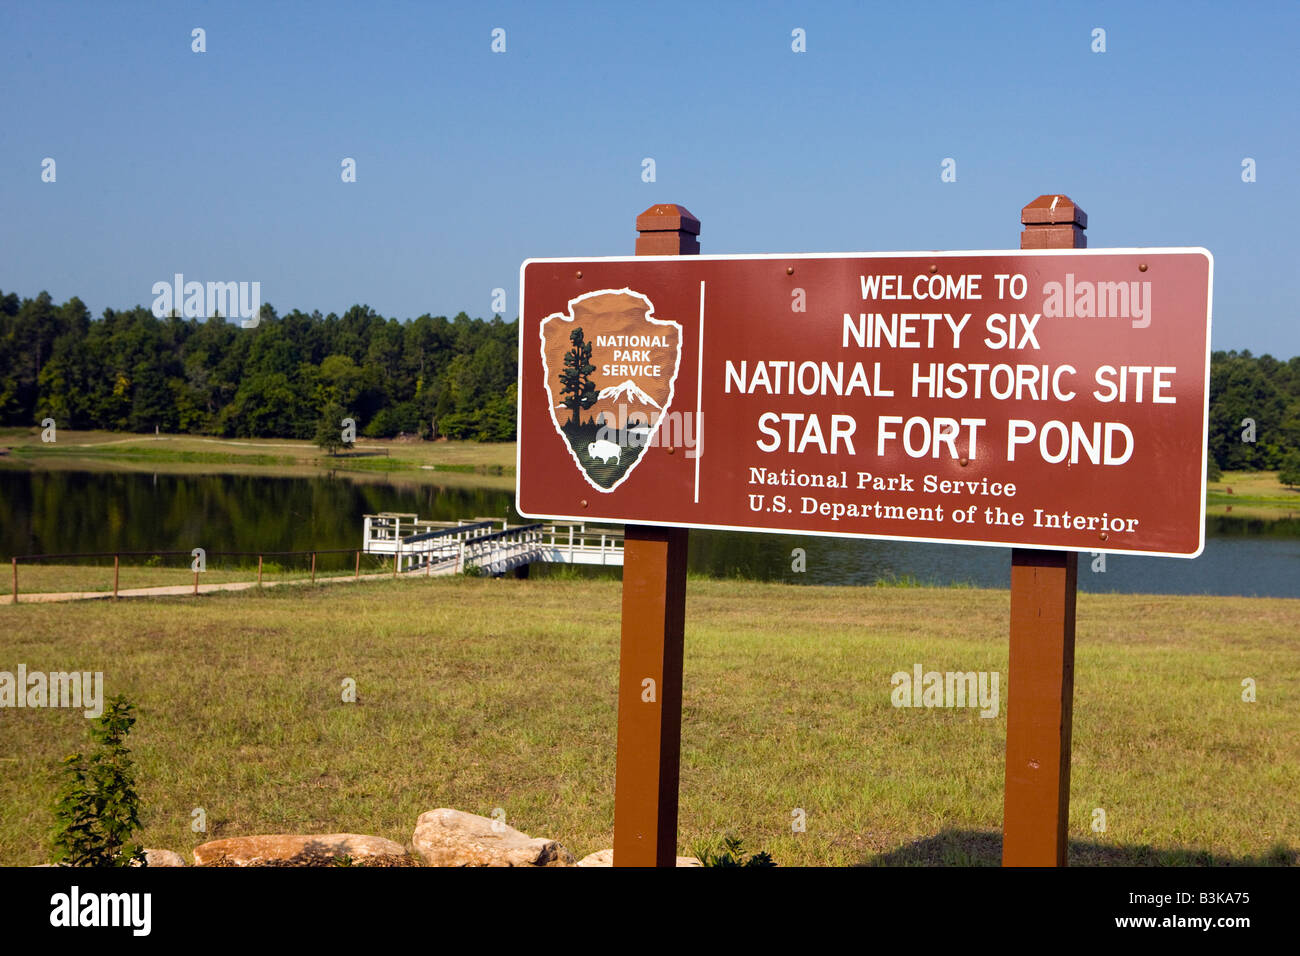 National Park Service welcome sign to the Star Fort Pond, Ninety Six National Historical Site, Ninety-Six, South - Stock Image